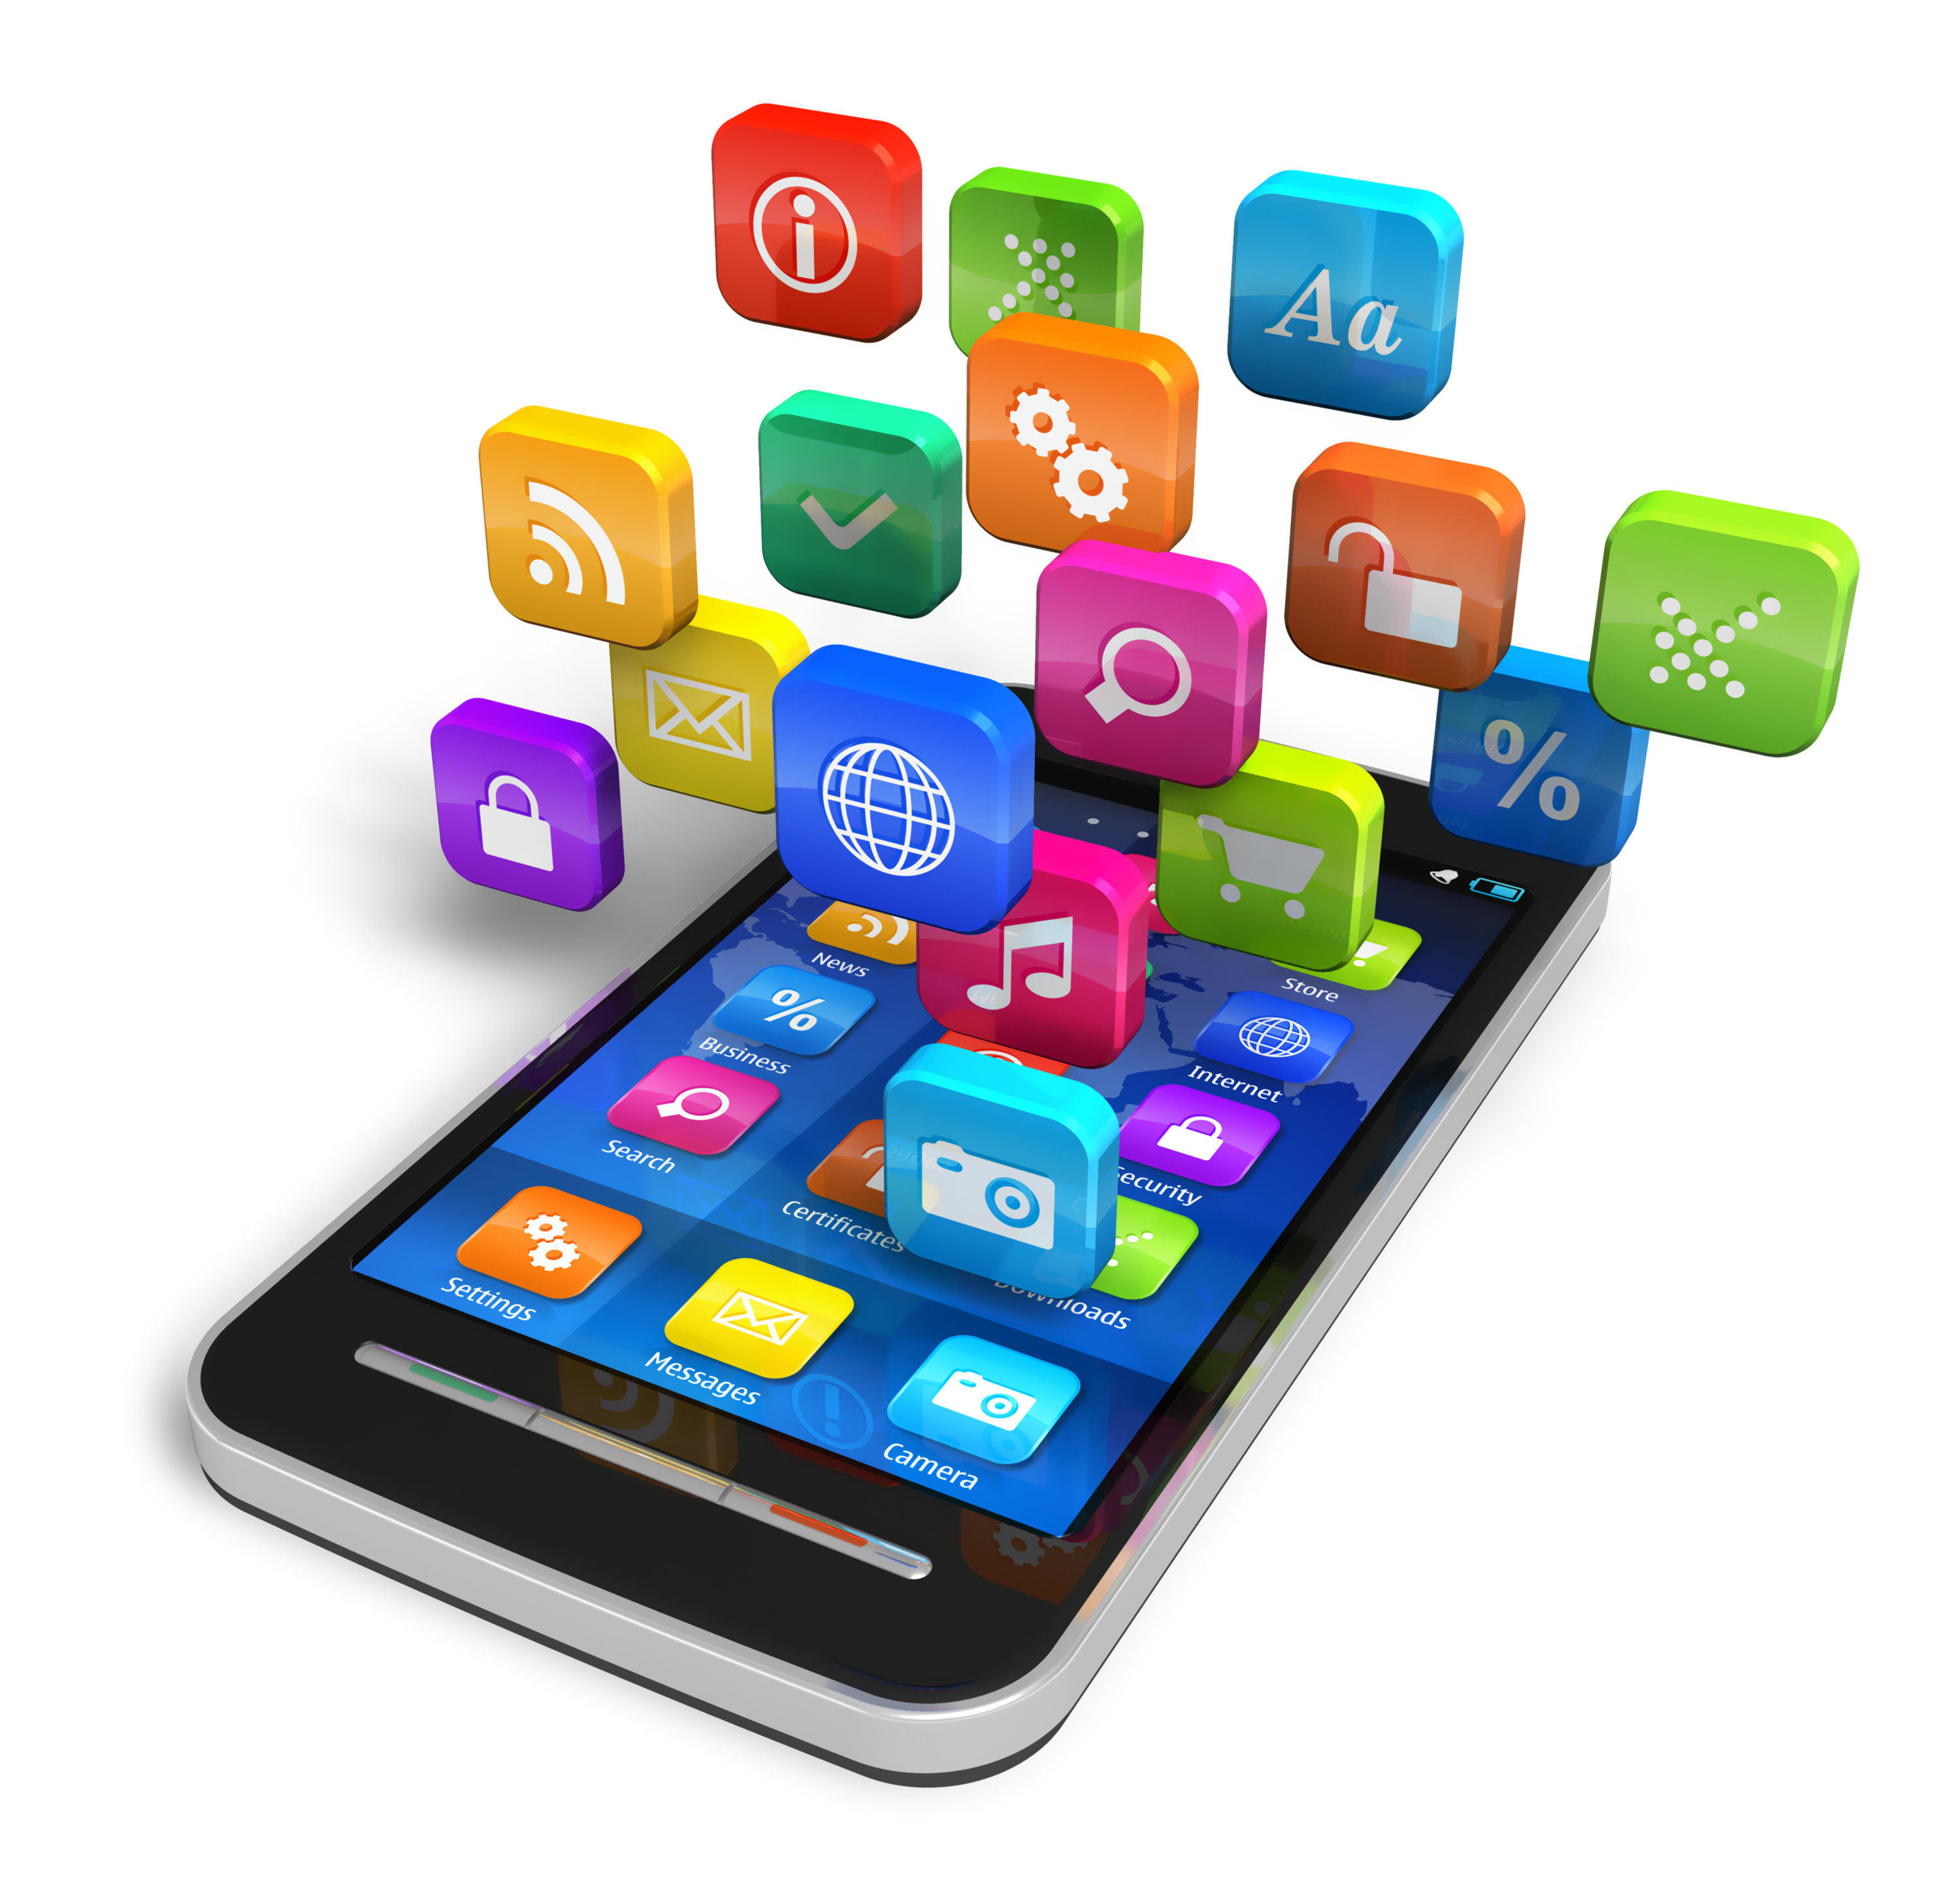 Download The Best Free 9apps Apk For Your Android